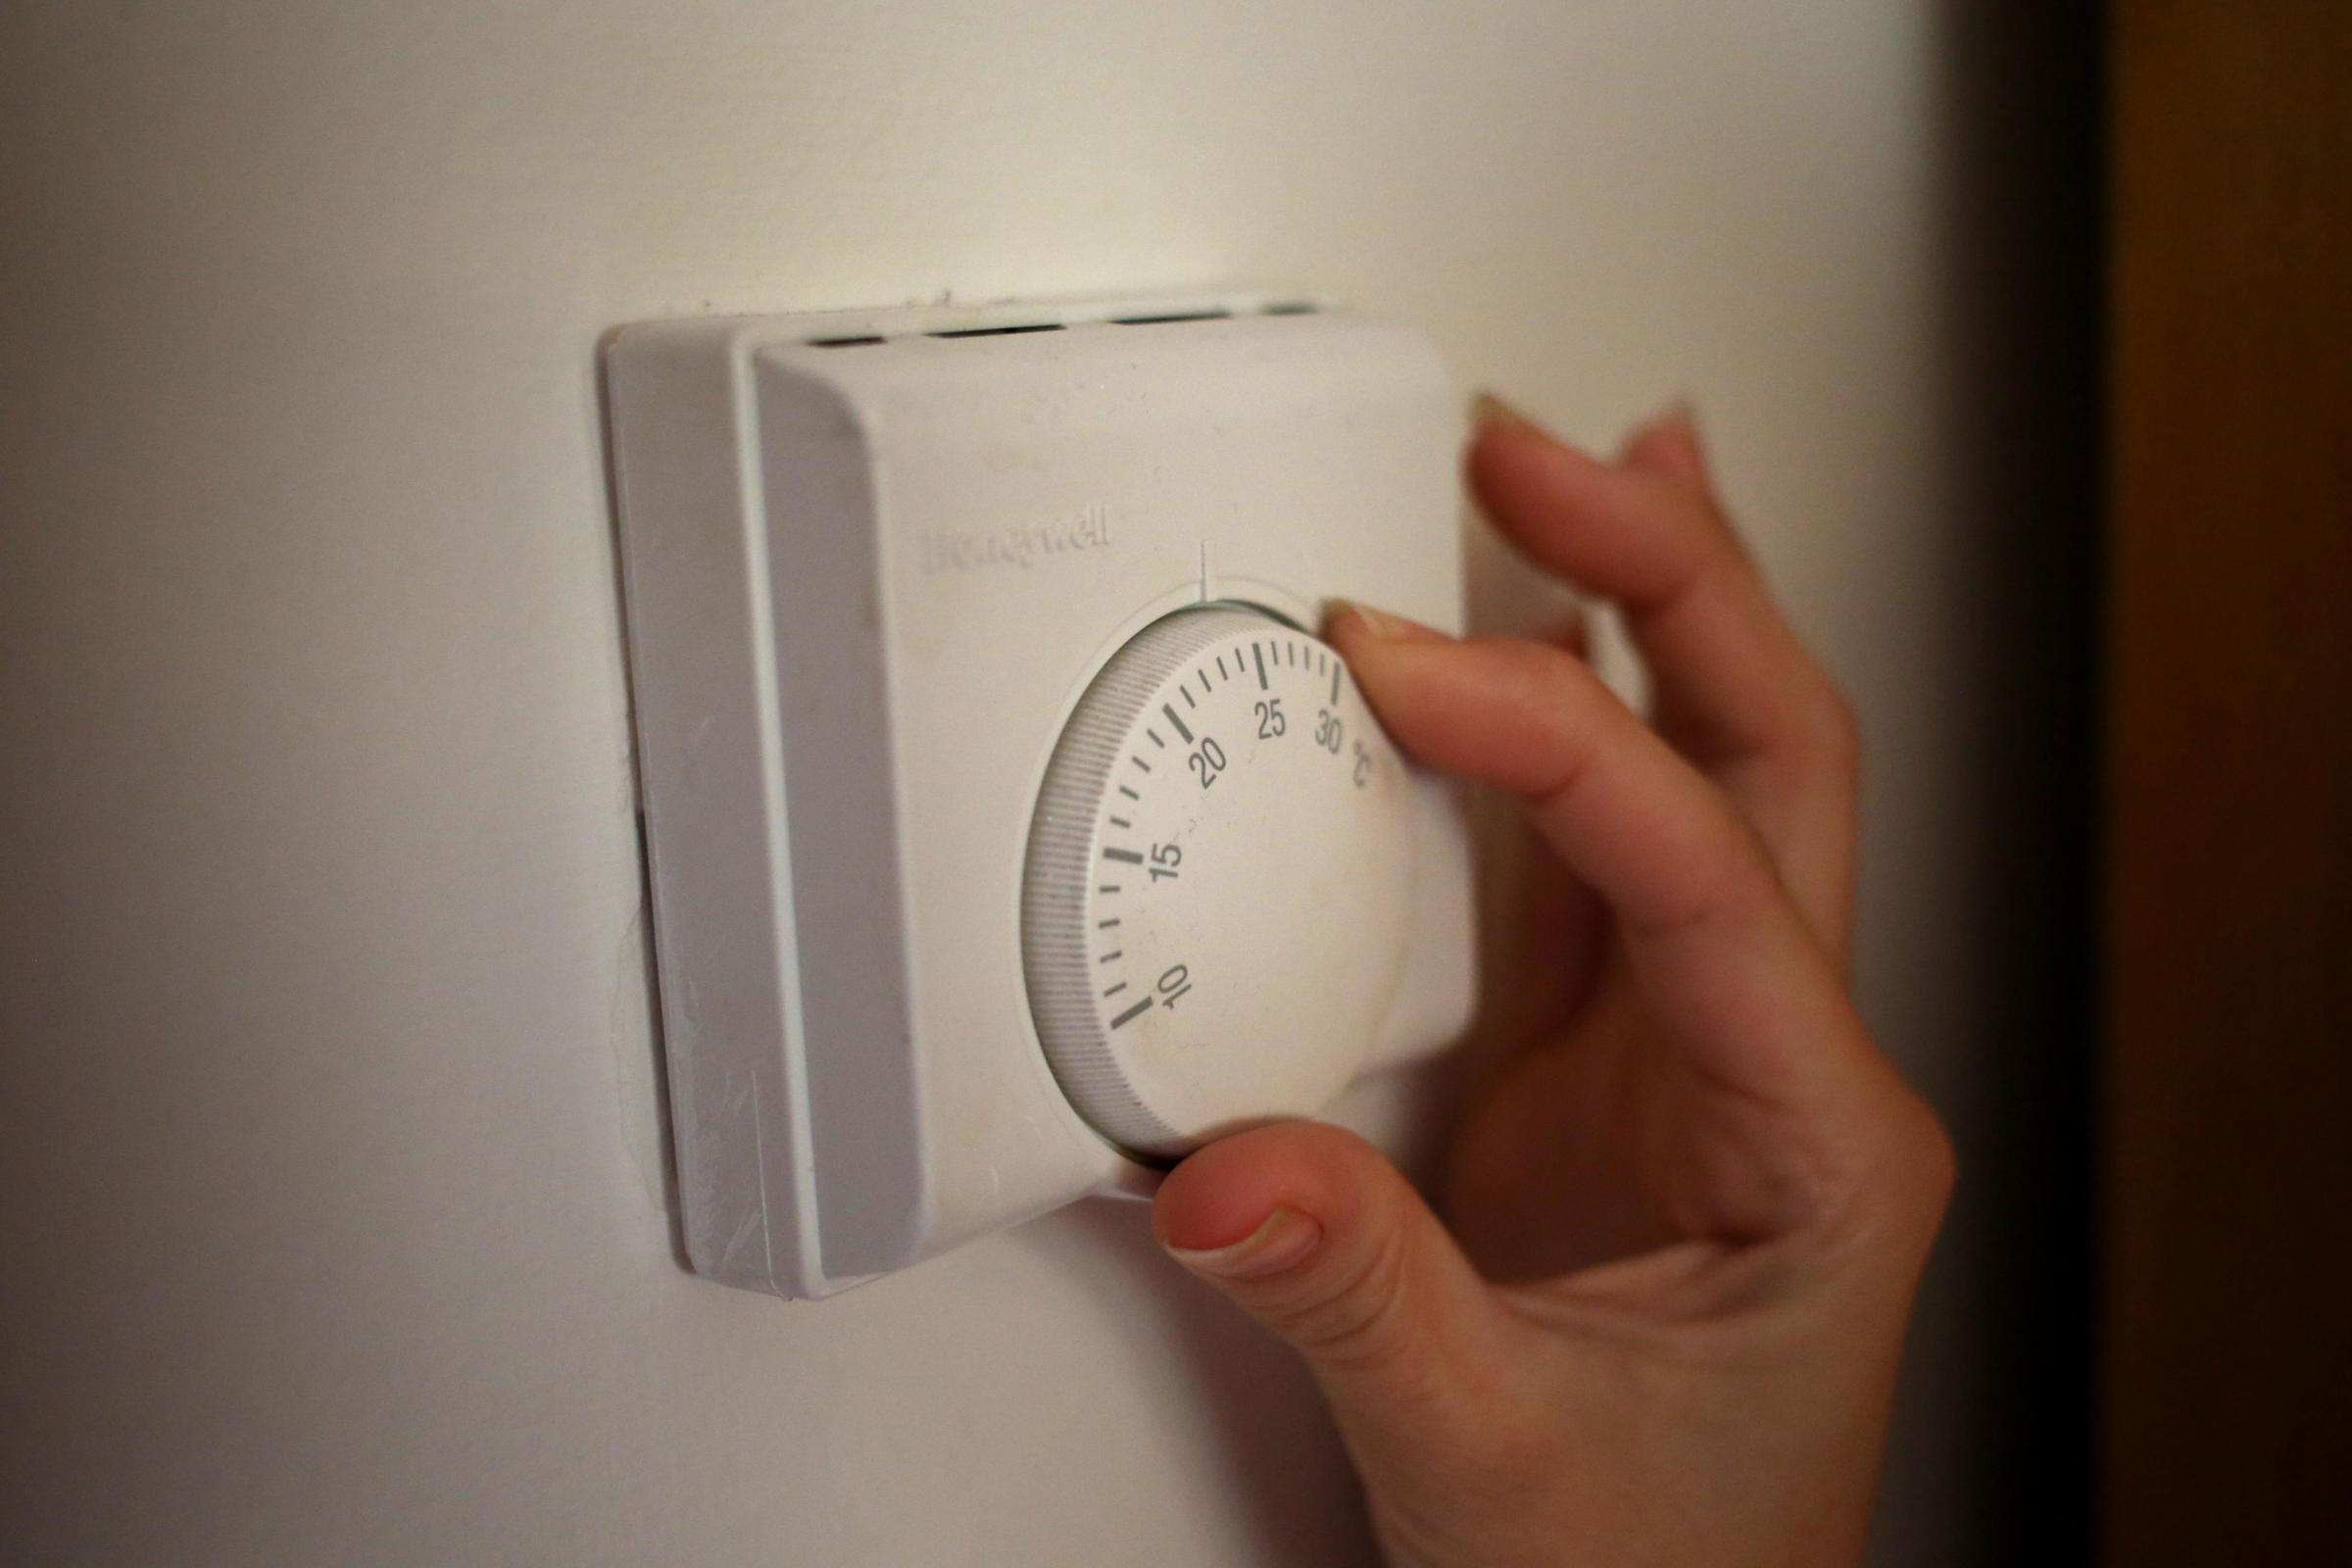 The council said 5.2 per cent of homes are currently without central heating